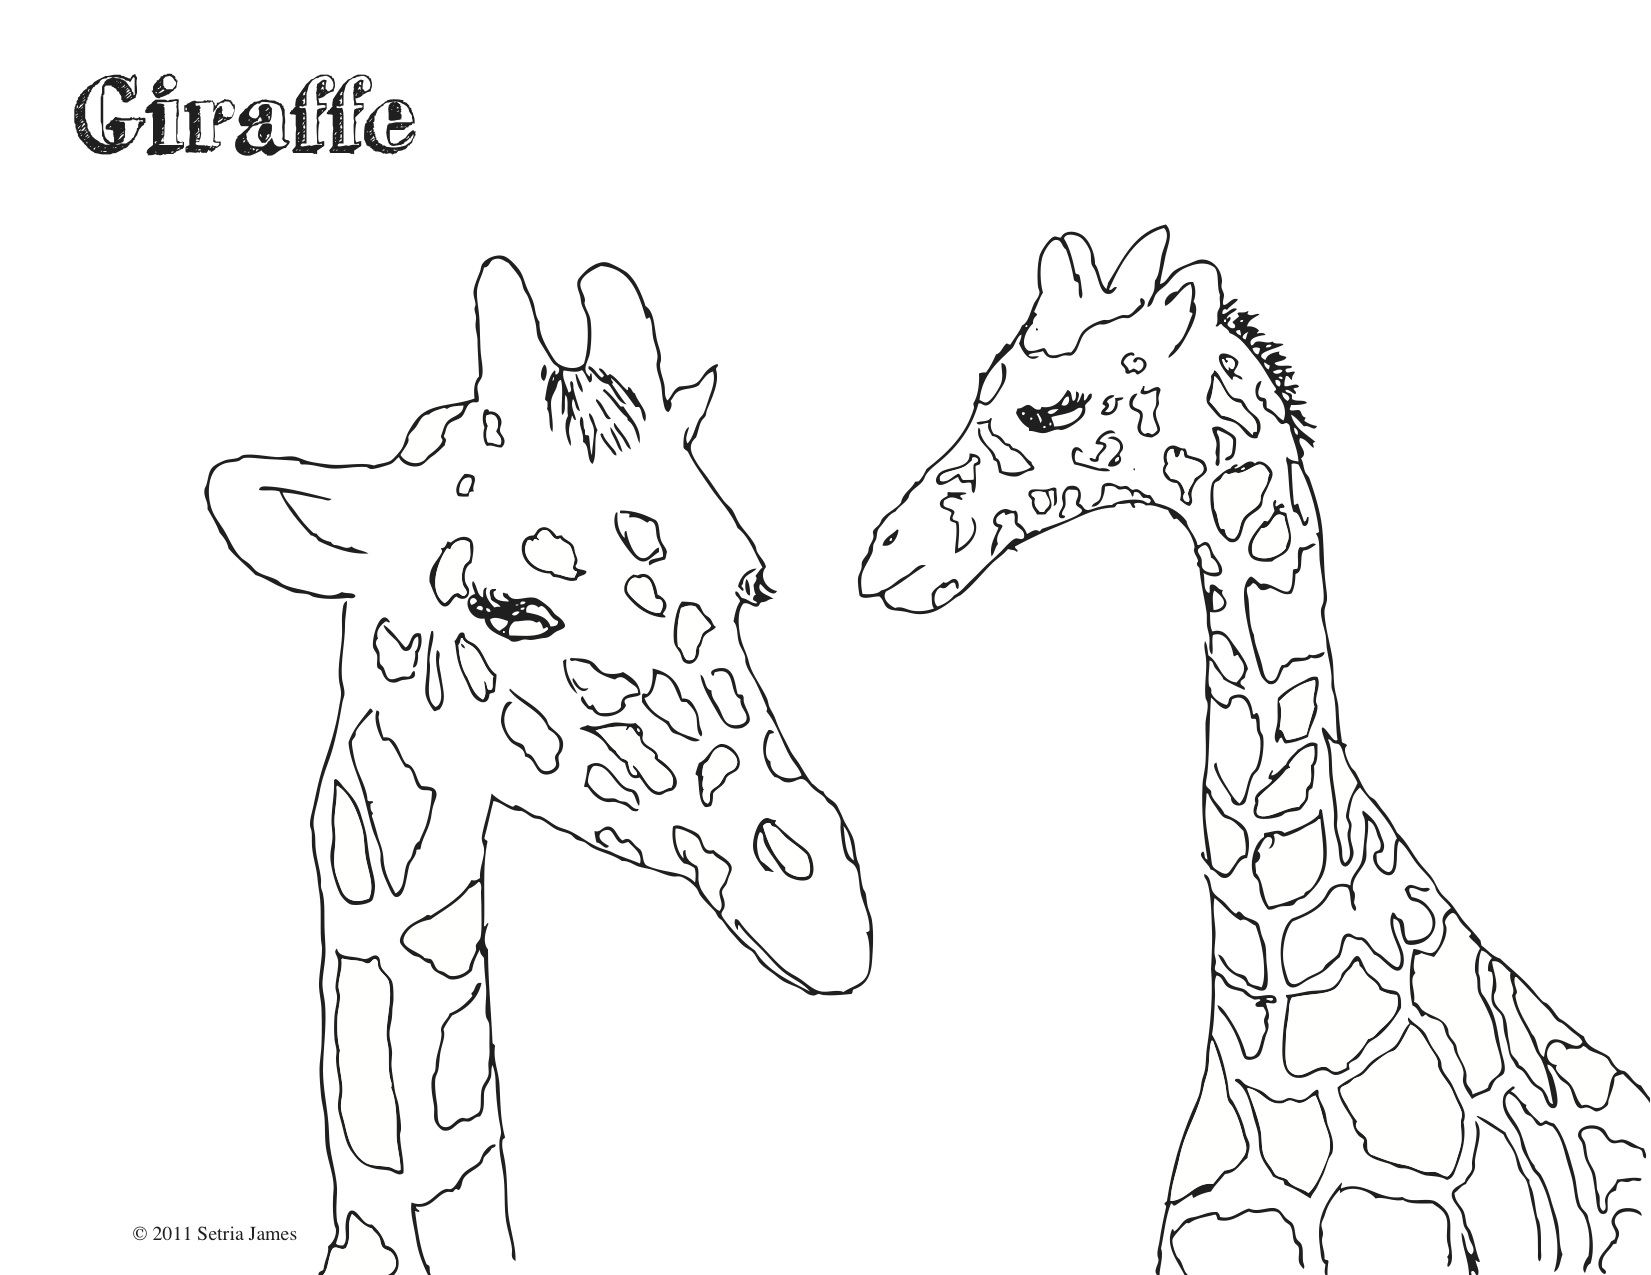 1000+ images about Giraffes on Pinterest